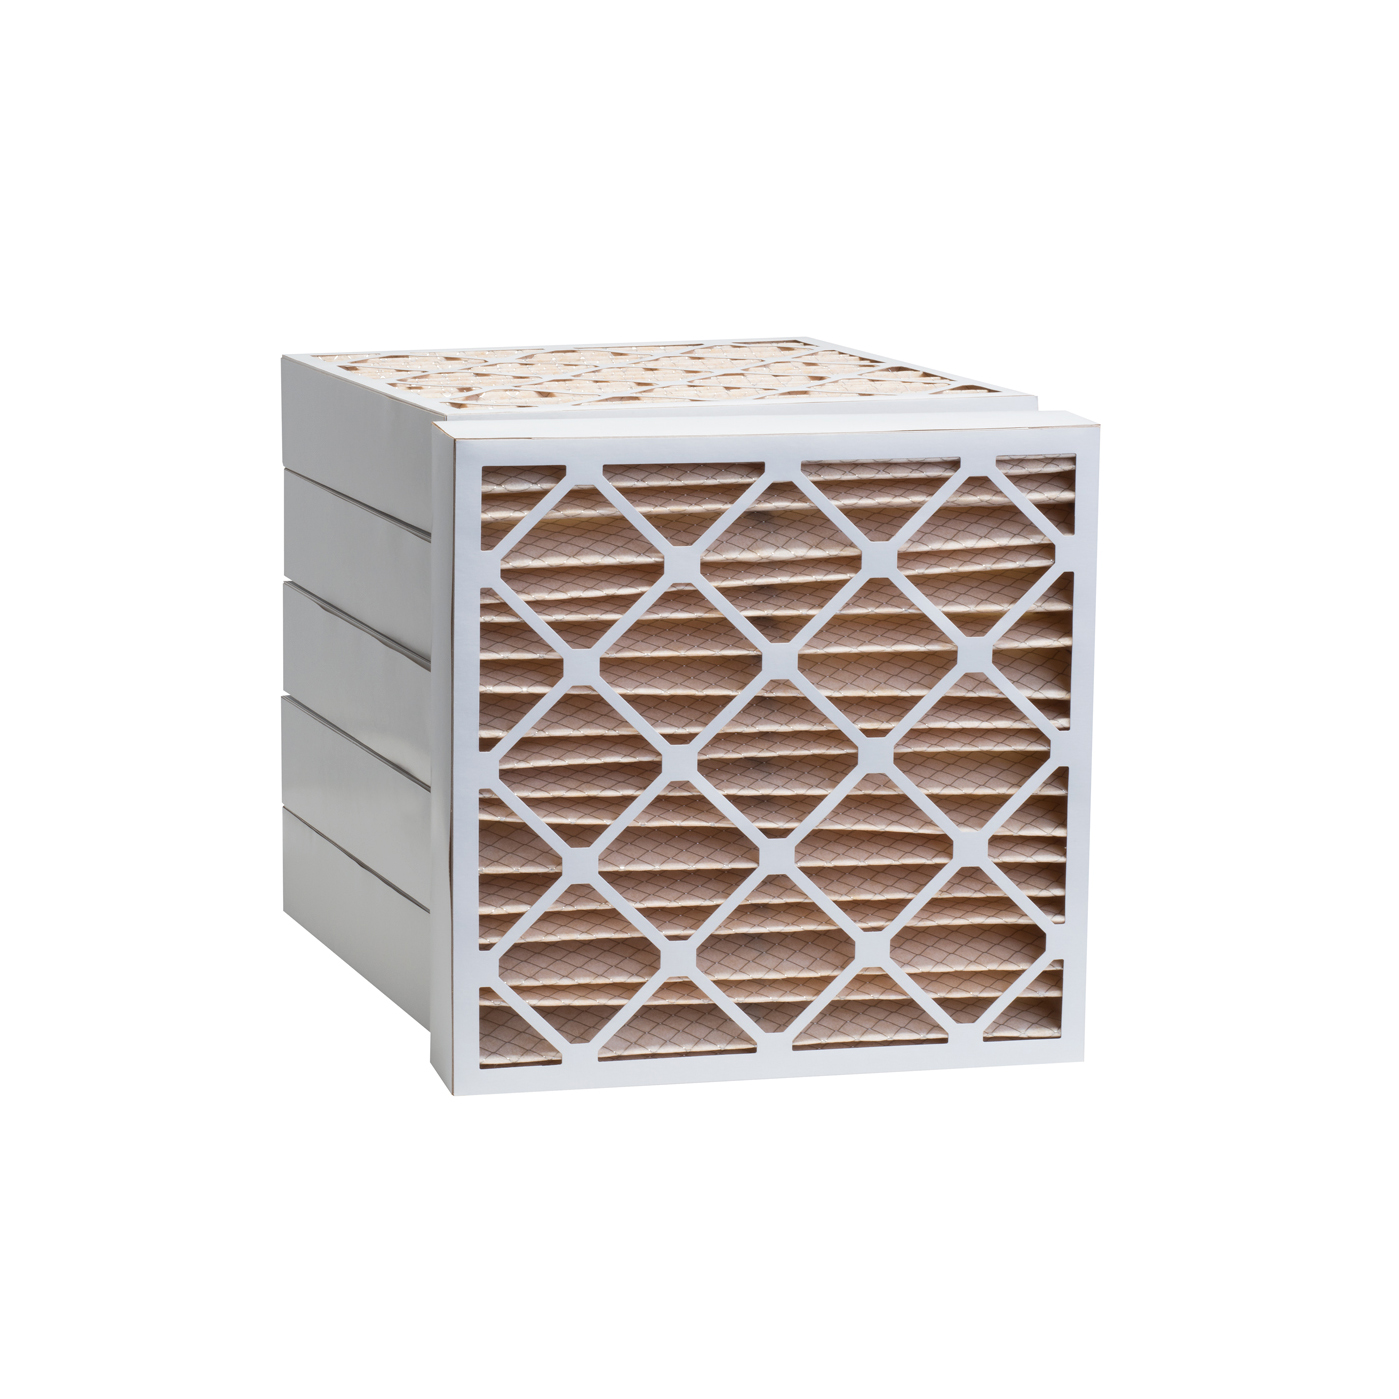 Tier1 20 x 21 x 4  MERV 11 - 6 Pack Air Filters (P15S-642021) TIER1_P15S_642021_6_PACK